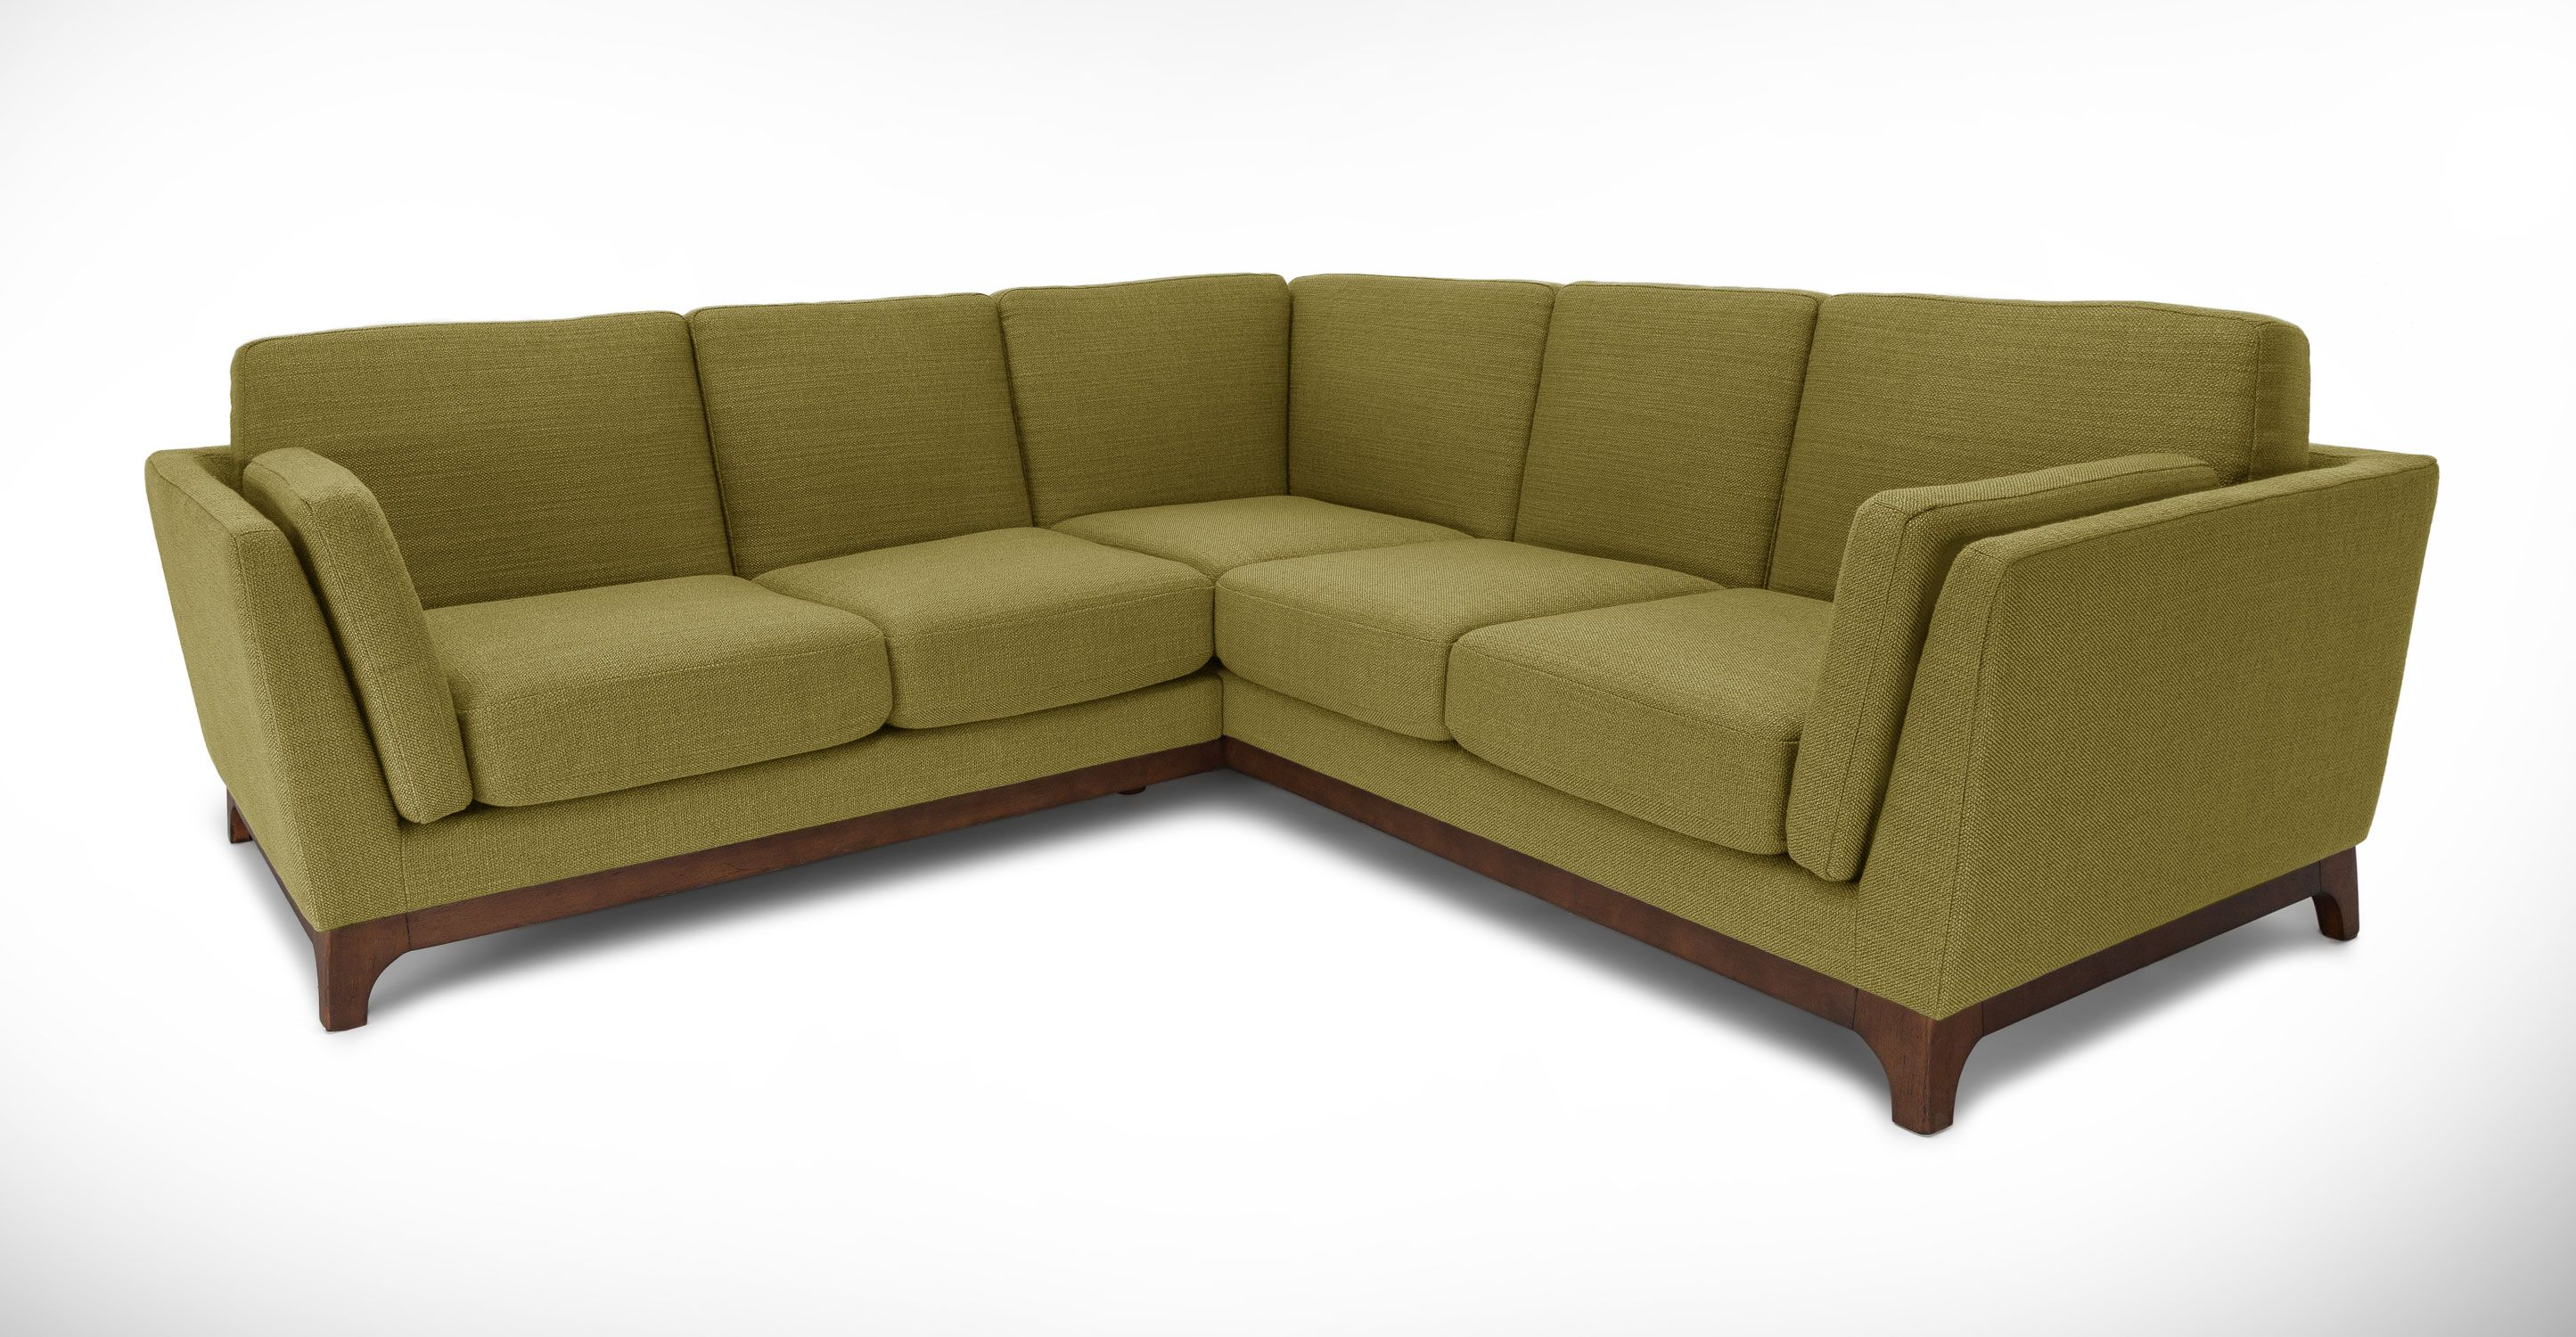 Green Sectional Sofa Solid Wood Legs Article Ceni Modern